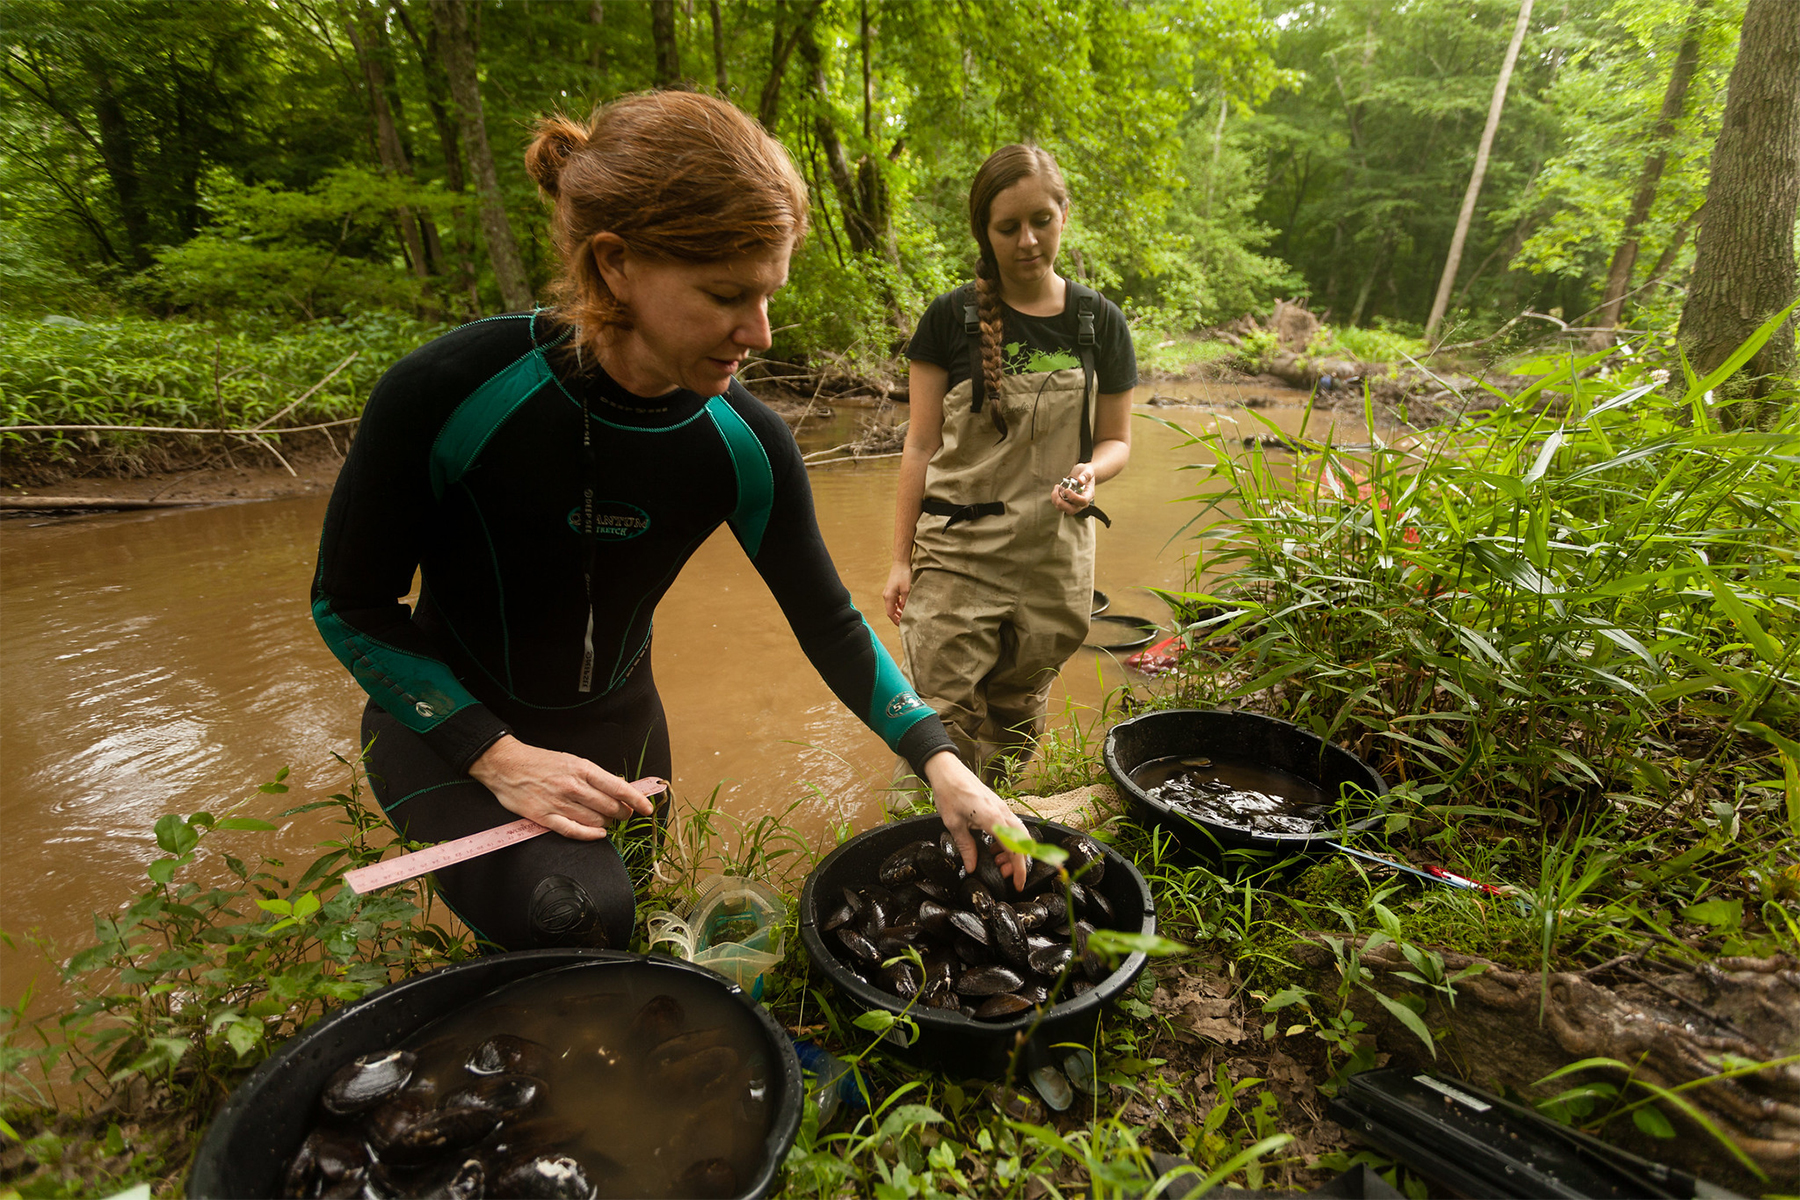 Two researchers examine mussels in a stream.